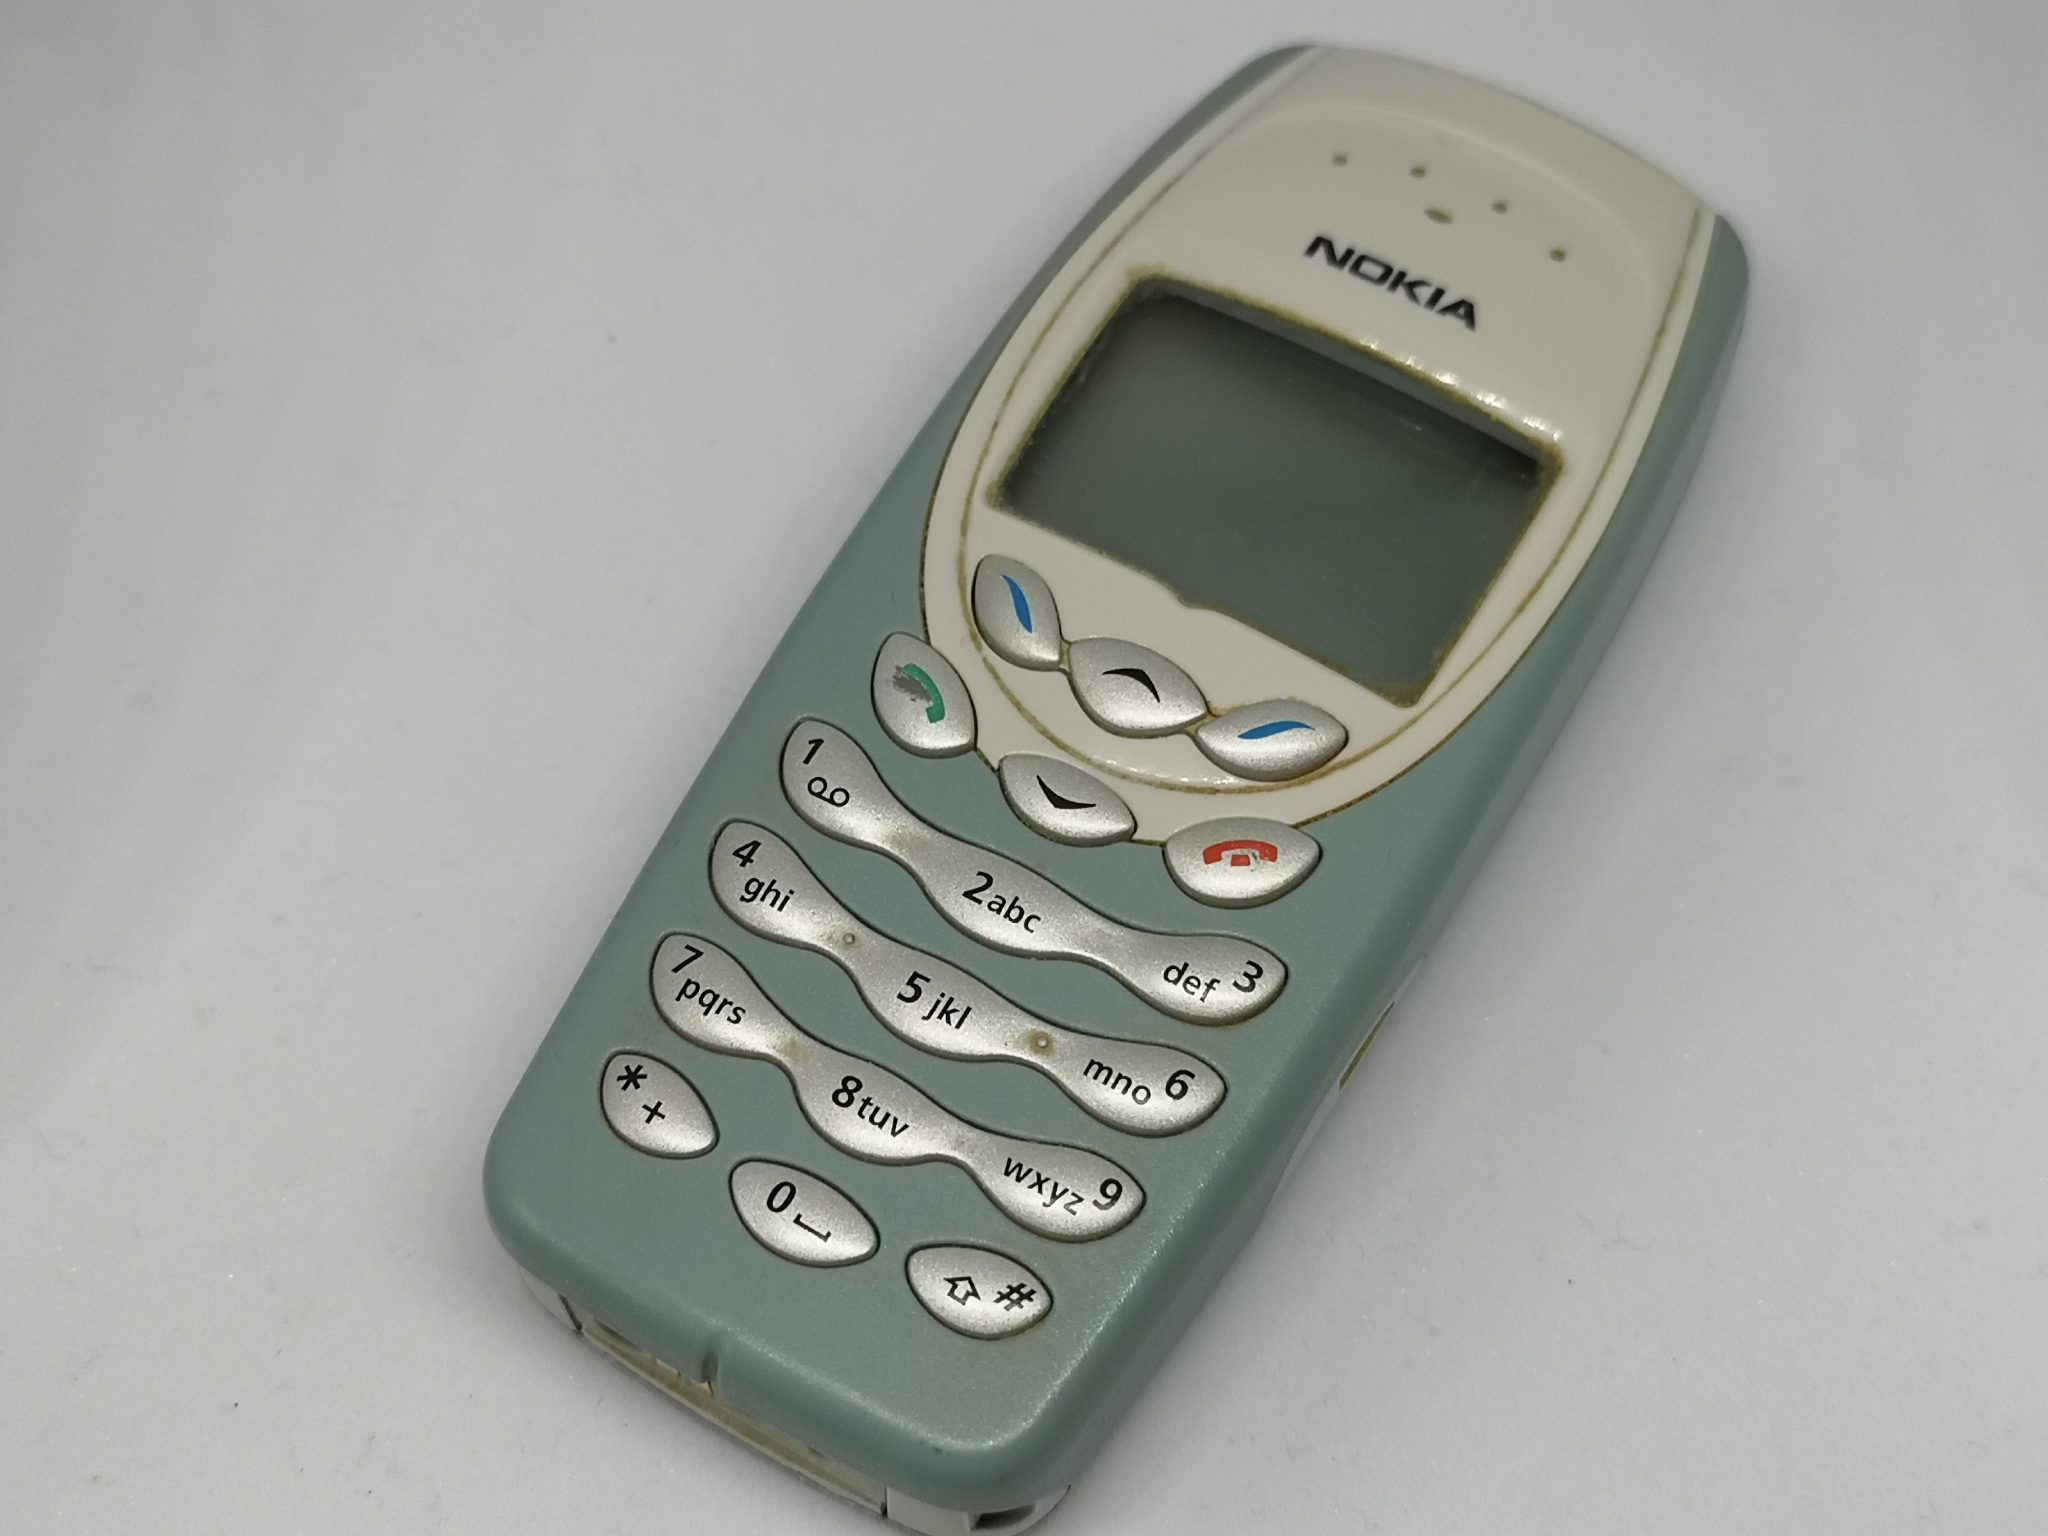 Nokia 3410 Review - Classic Mobile Phone Sequel